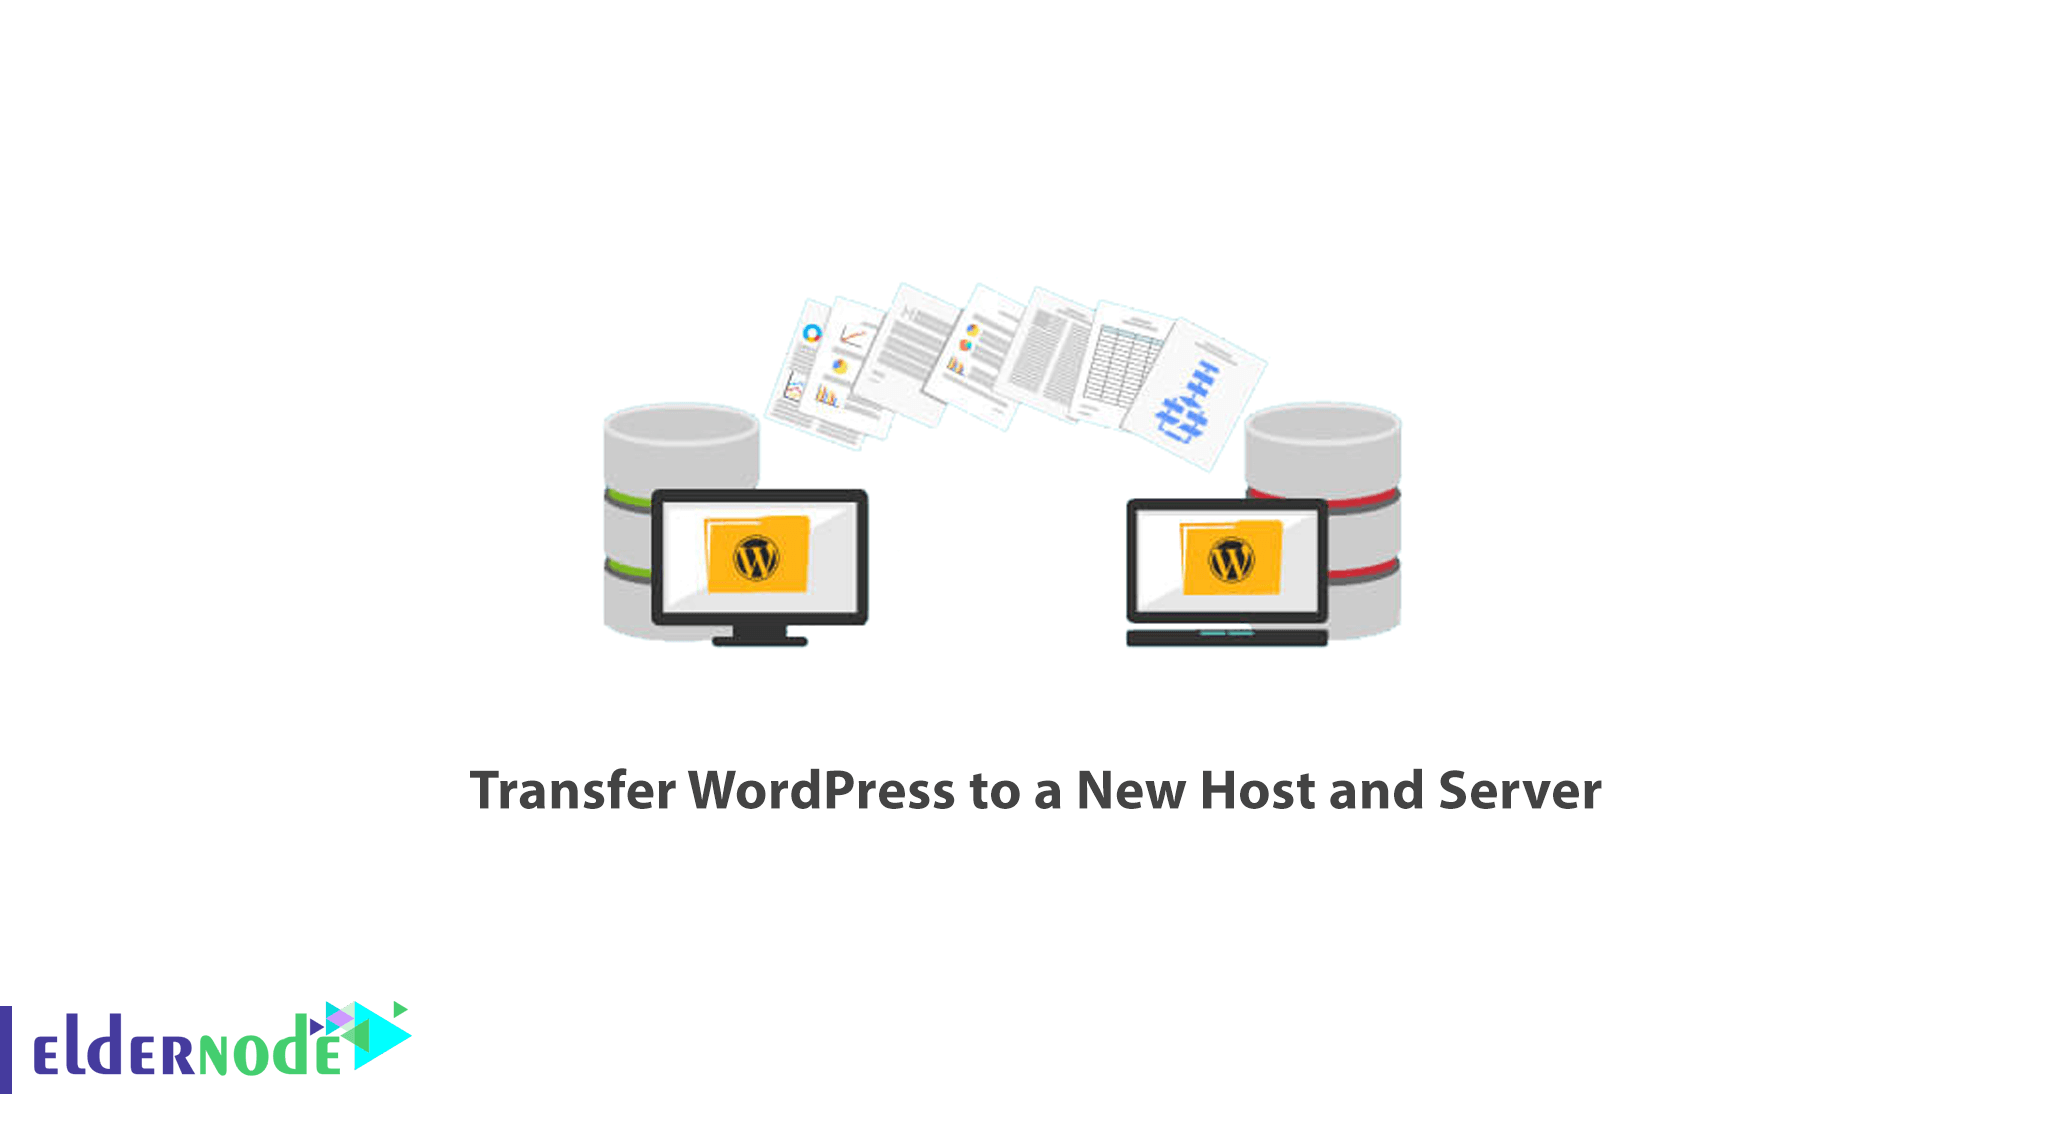 How to Transfer WordPress to a New Host and Server